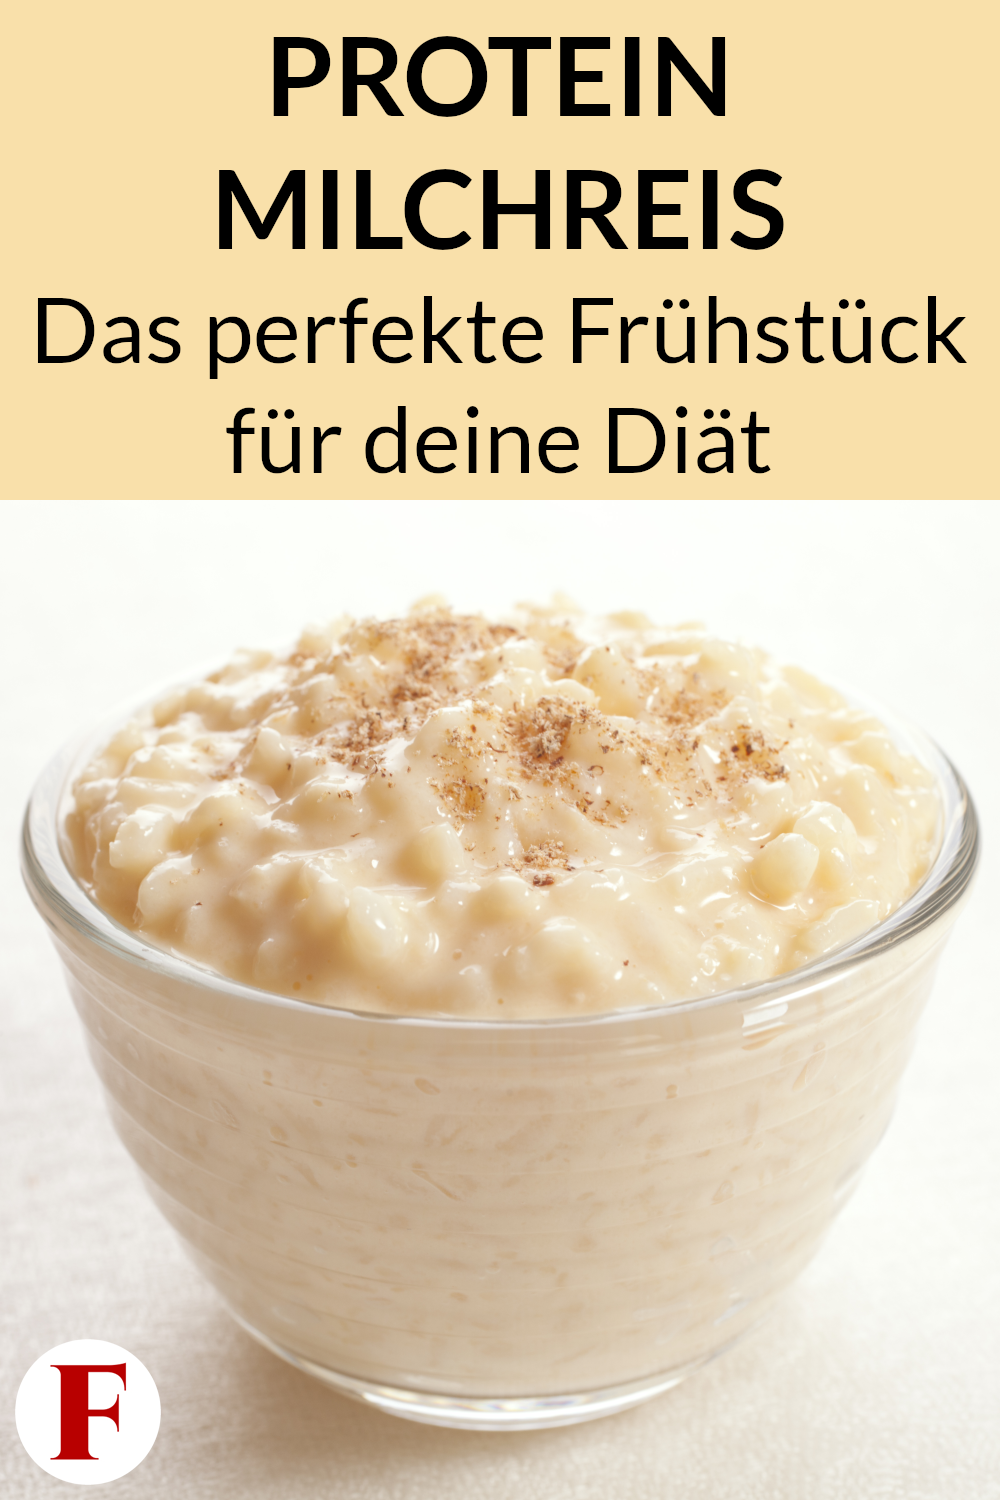 Protein Rice Pudding Recipe - Slimming Breakfast, #Breakfast #Protein #Pudding #Recipe #rice #slimming